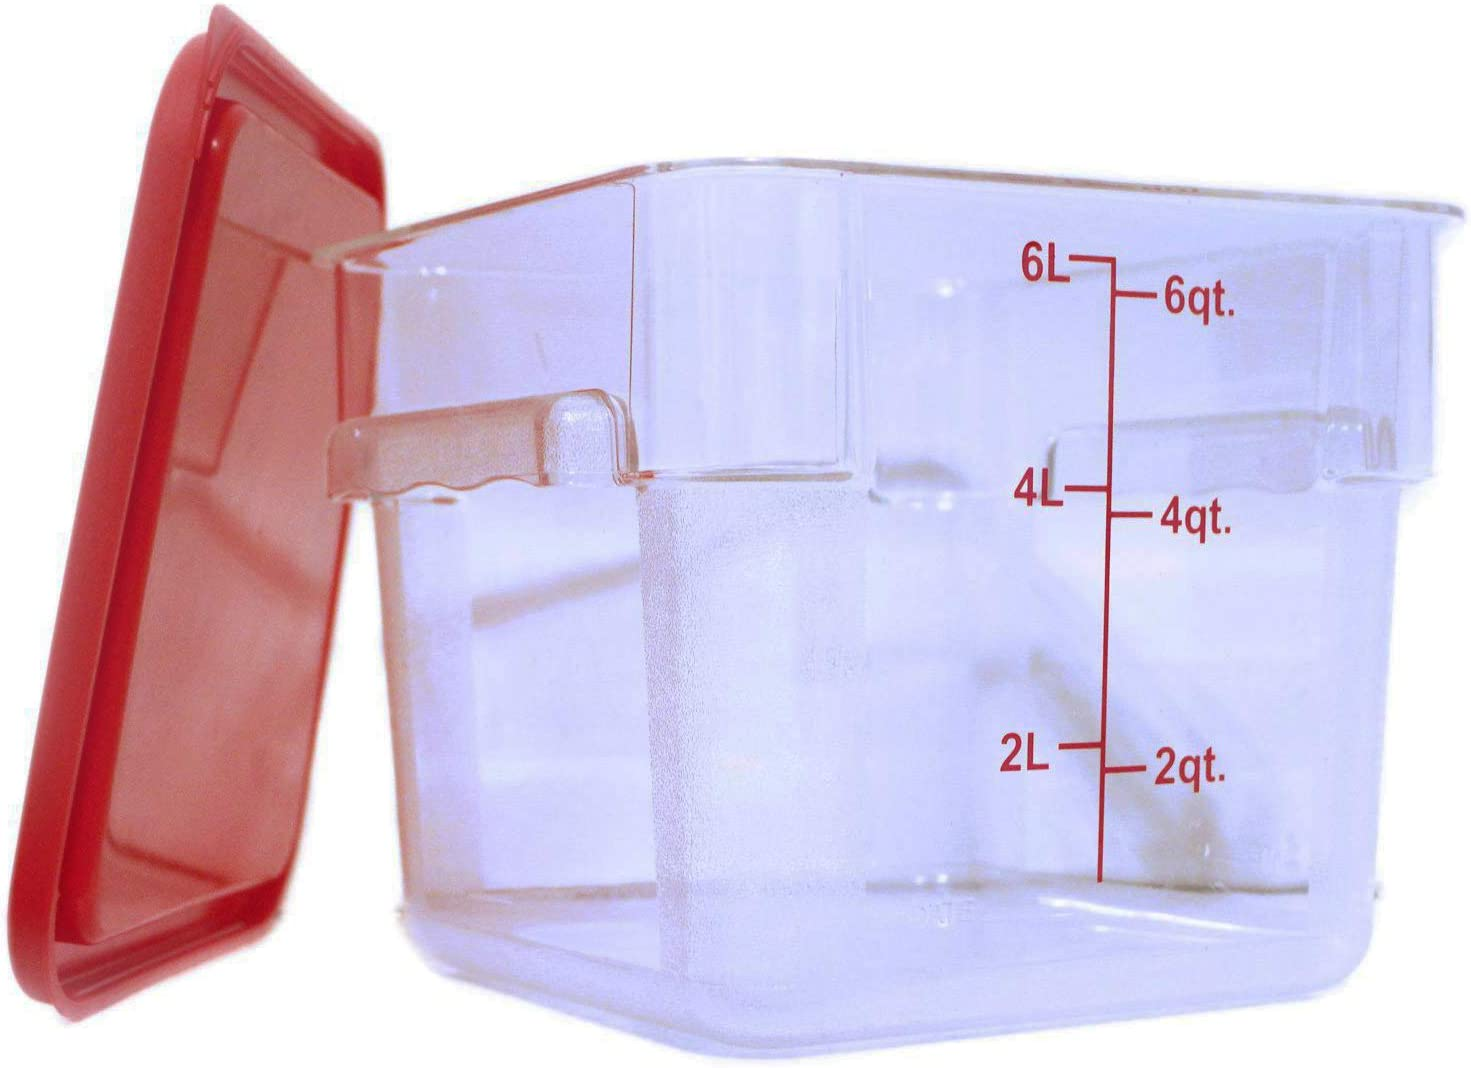 Tiger Chef 6 Quart Commercial Grade Clear Food Storage Square Polycarbonate Containers With Red Lids 4 Pack